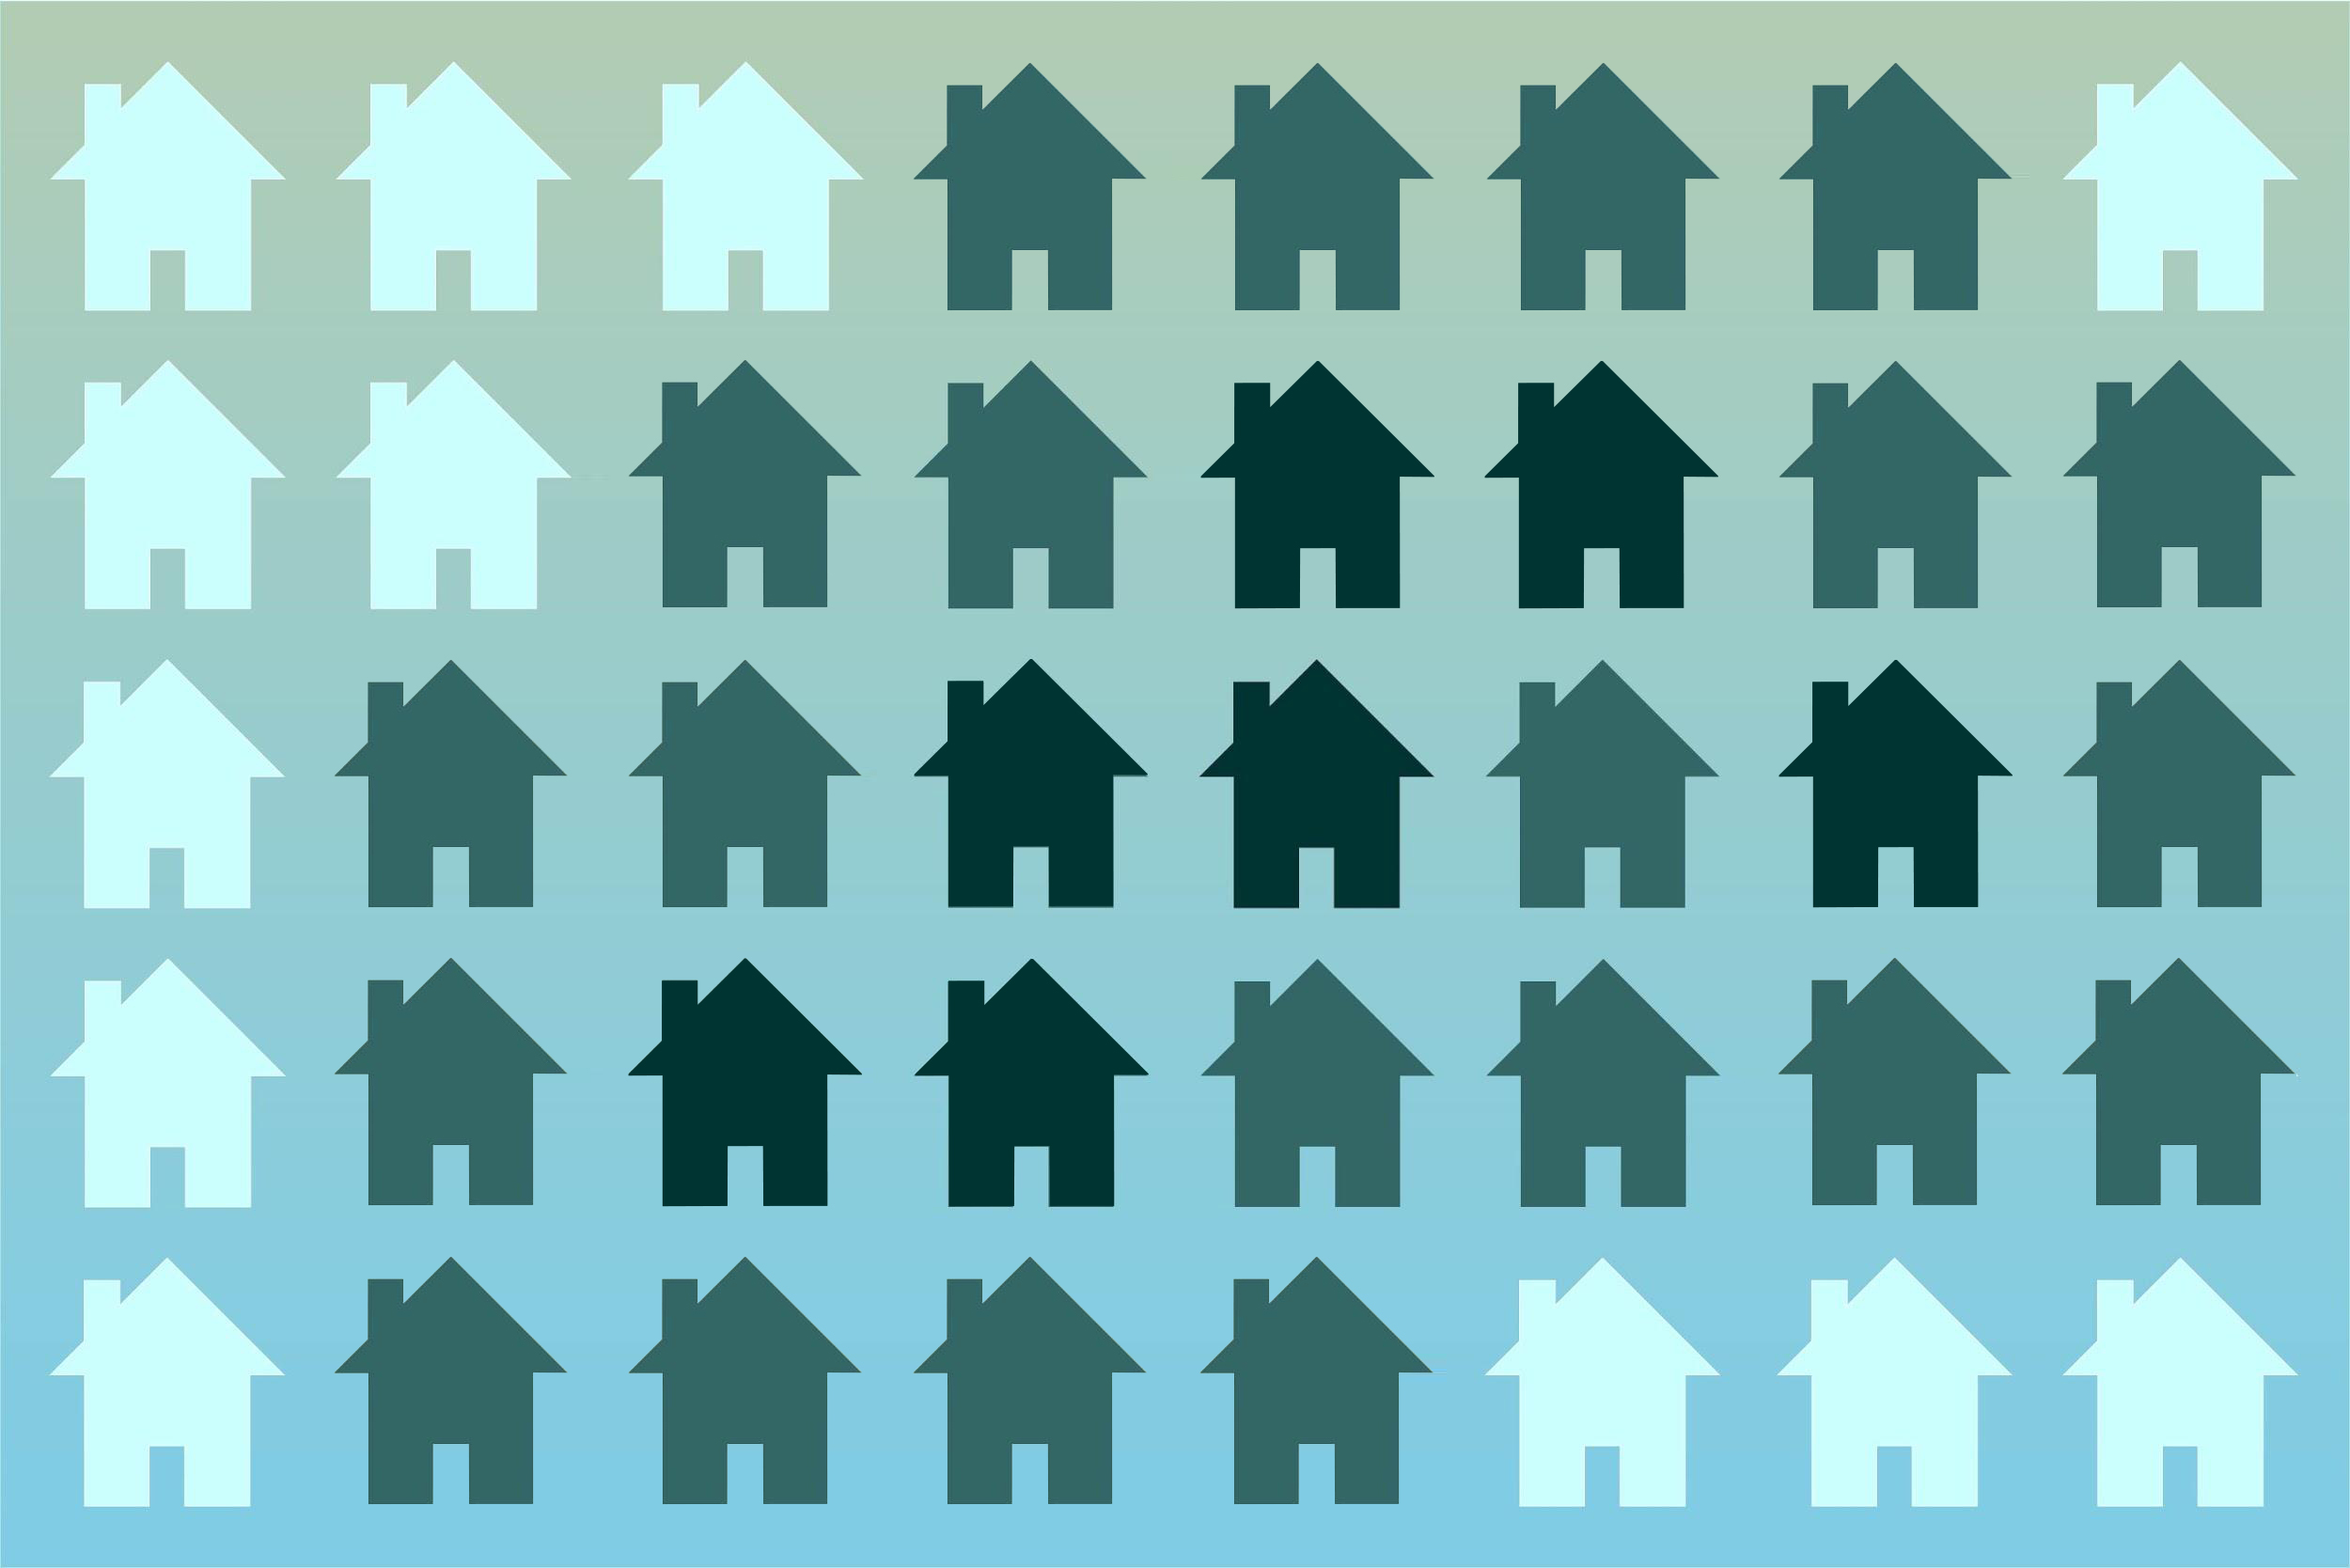 Illustration of foreclosed homes spreading to surrounding homes